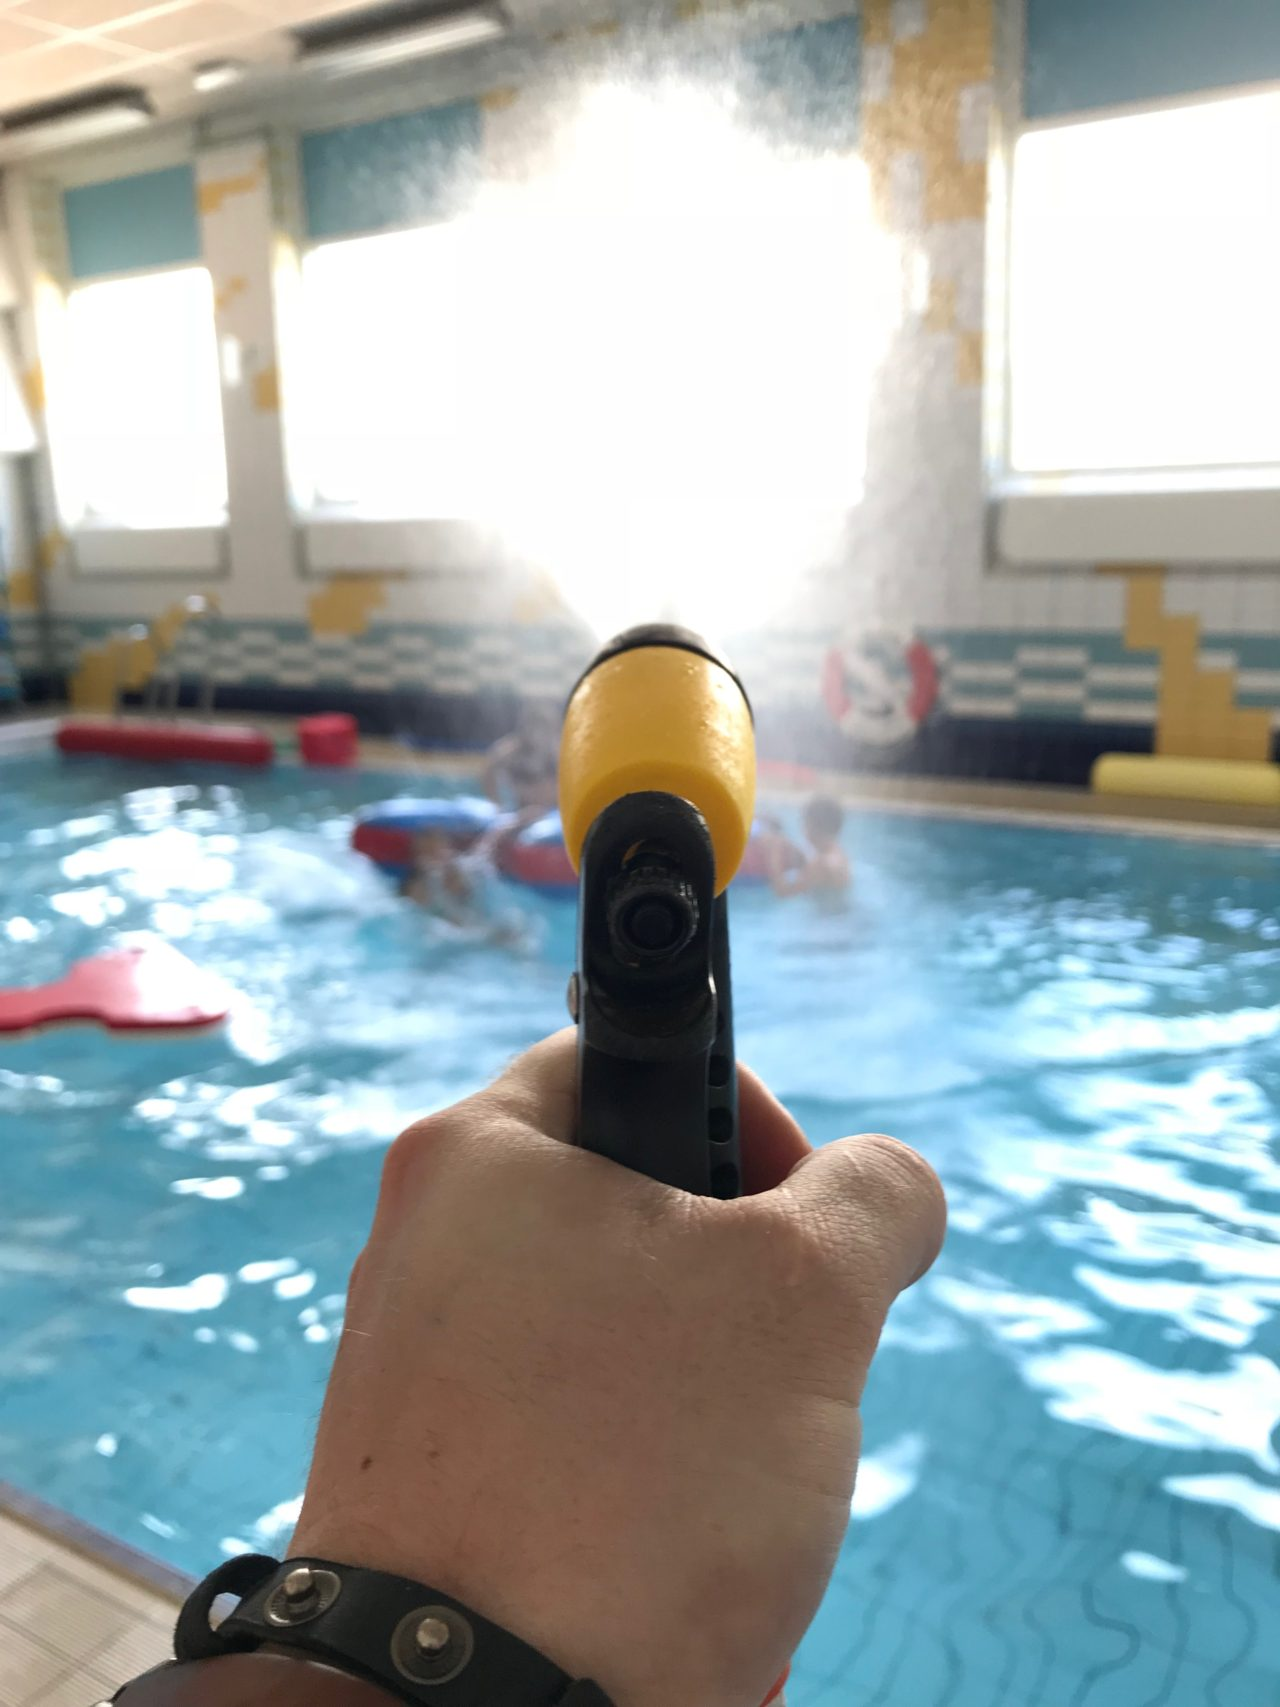 Hand Holding Water Gun Spraying Swimmers In Pool